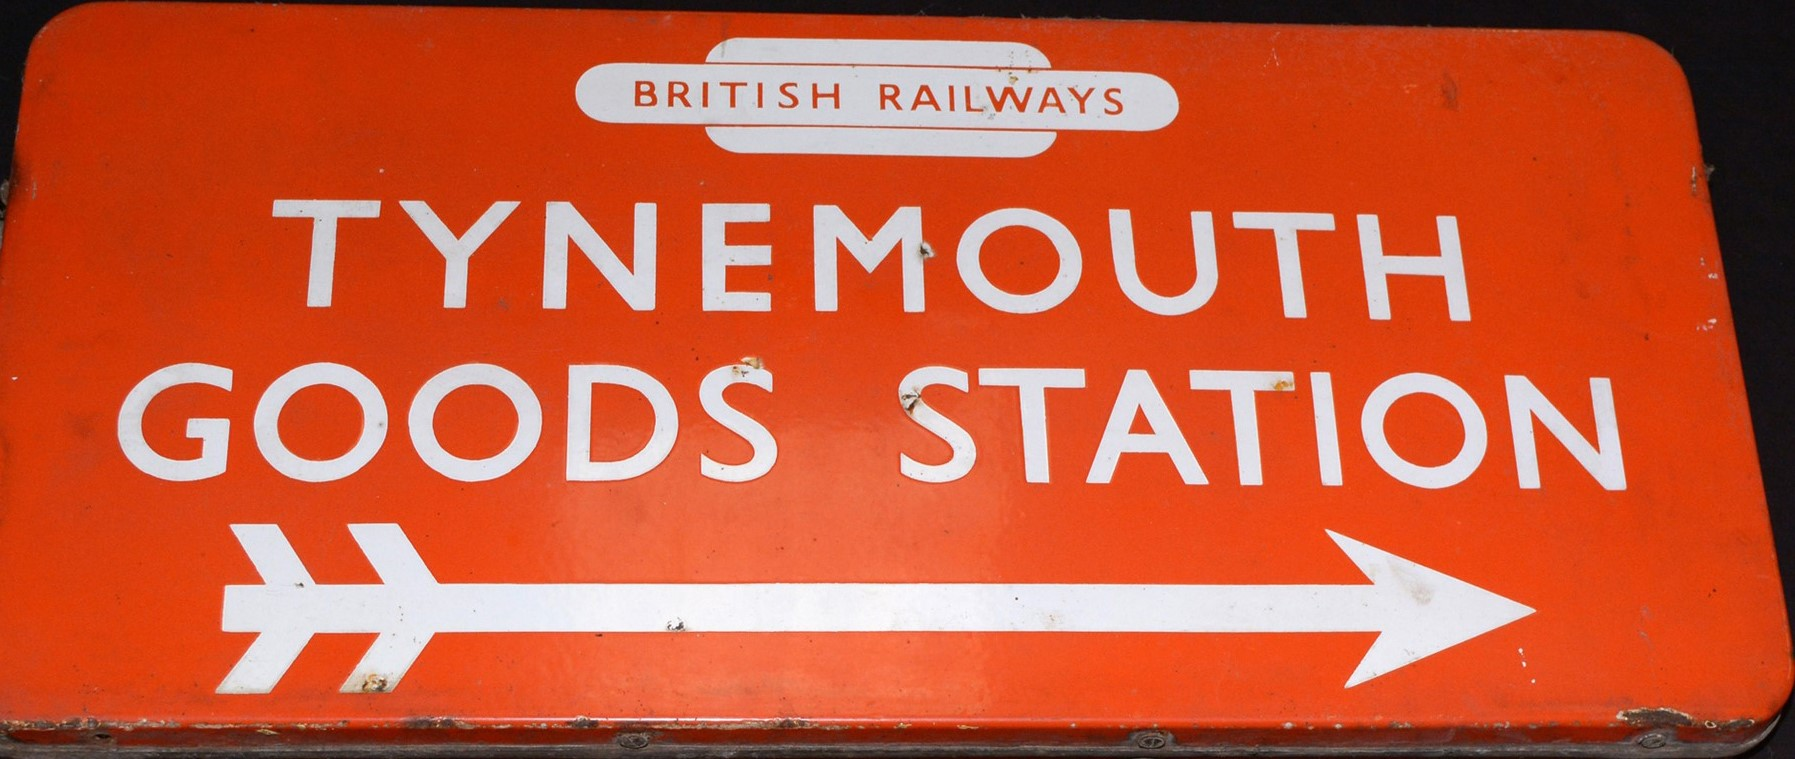 Tynemouth Goods Station enamel railway sign